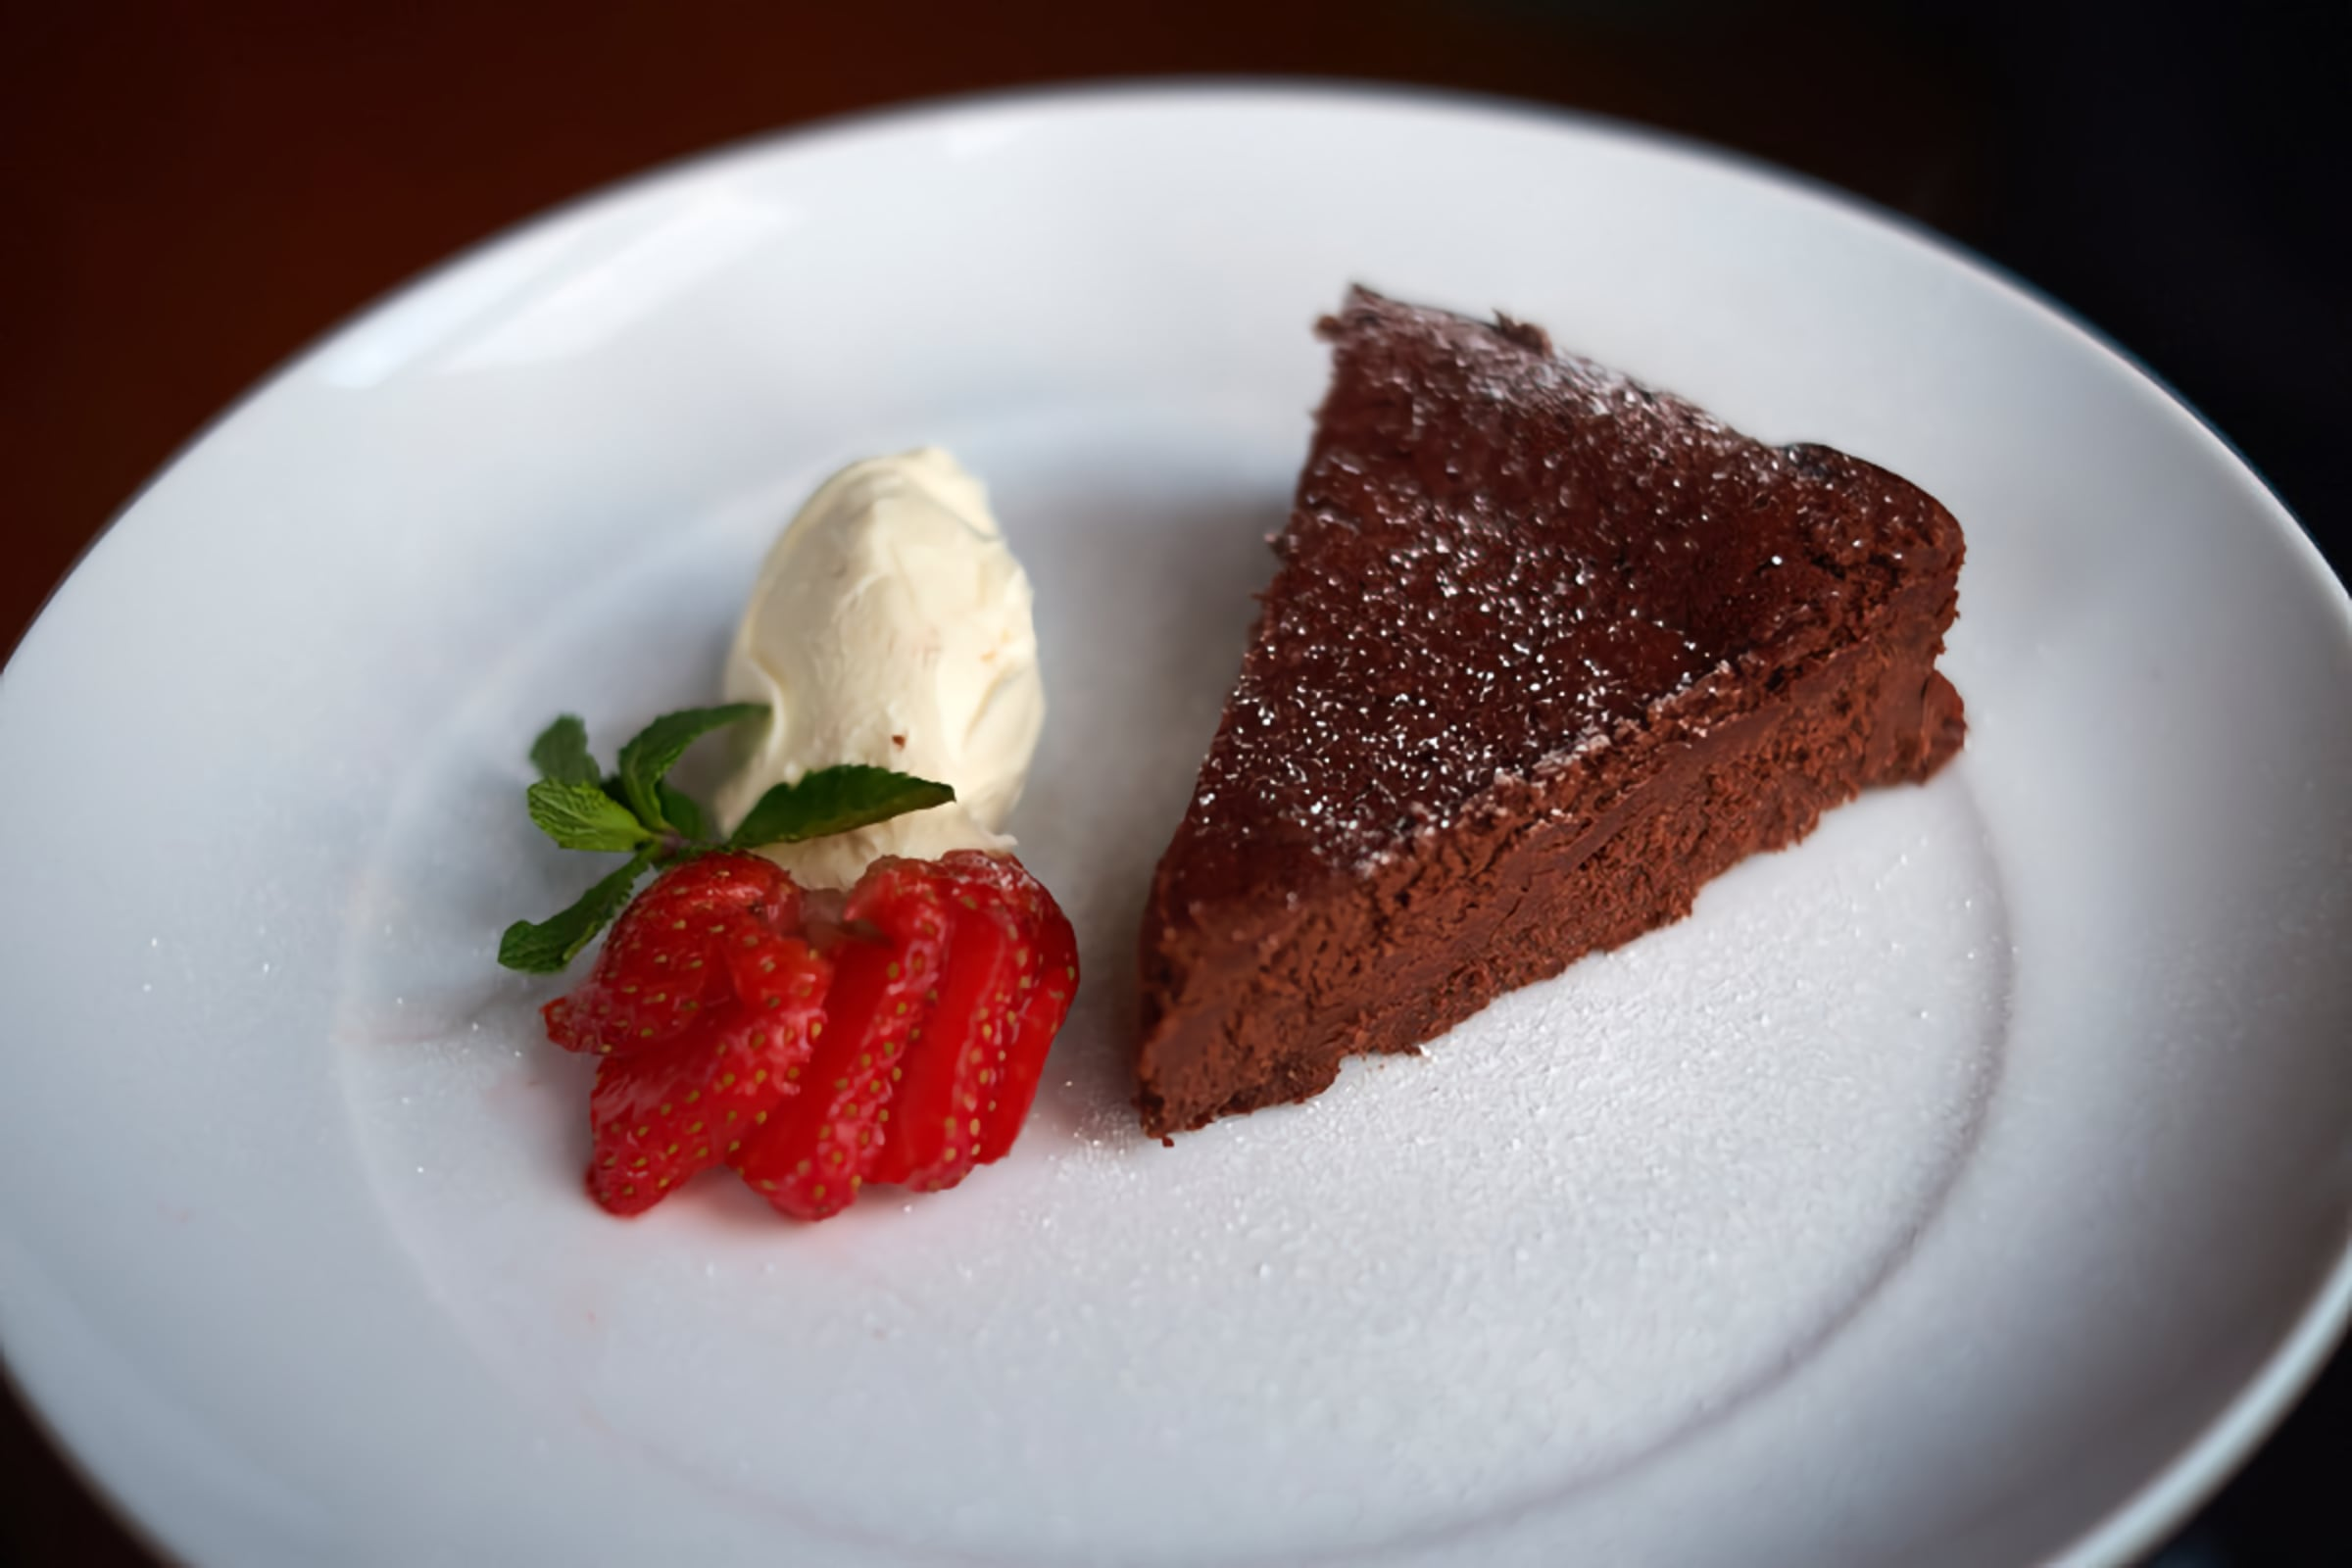 Flourless Chocolate Whisky Cake, served with creme fraiche